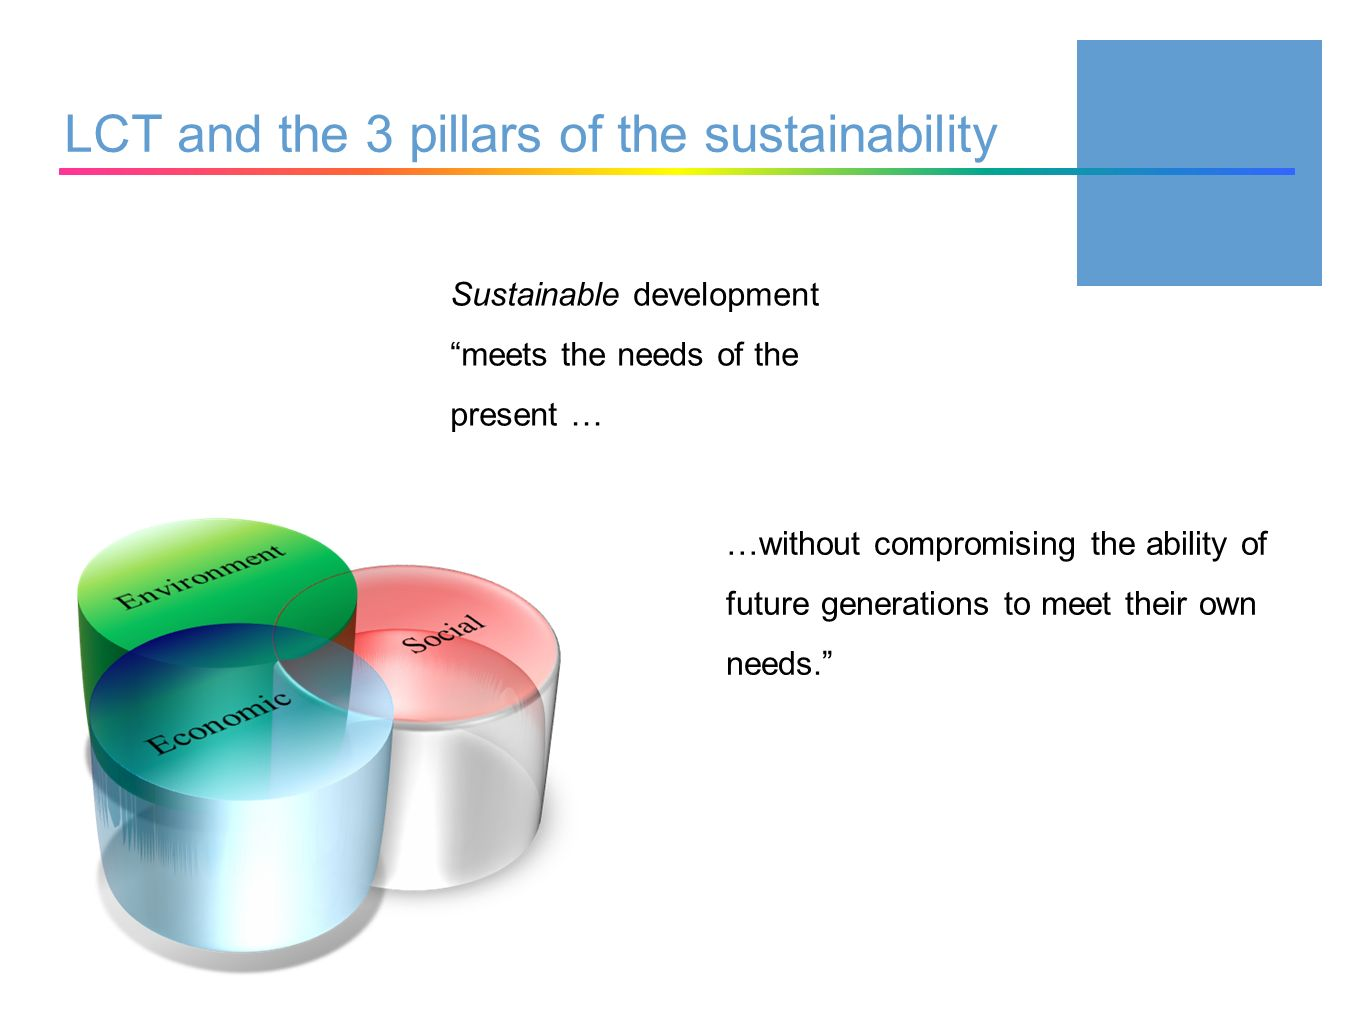 LCT and the 3 pillars of the sustainability …without compromising the ability of future generations to meet their own needs.